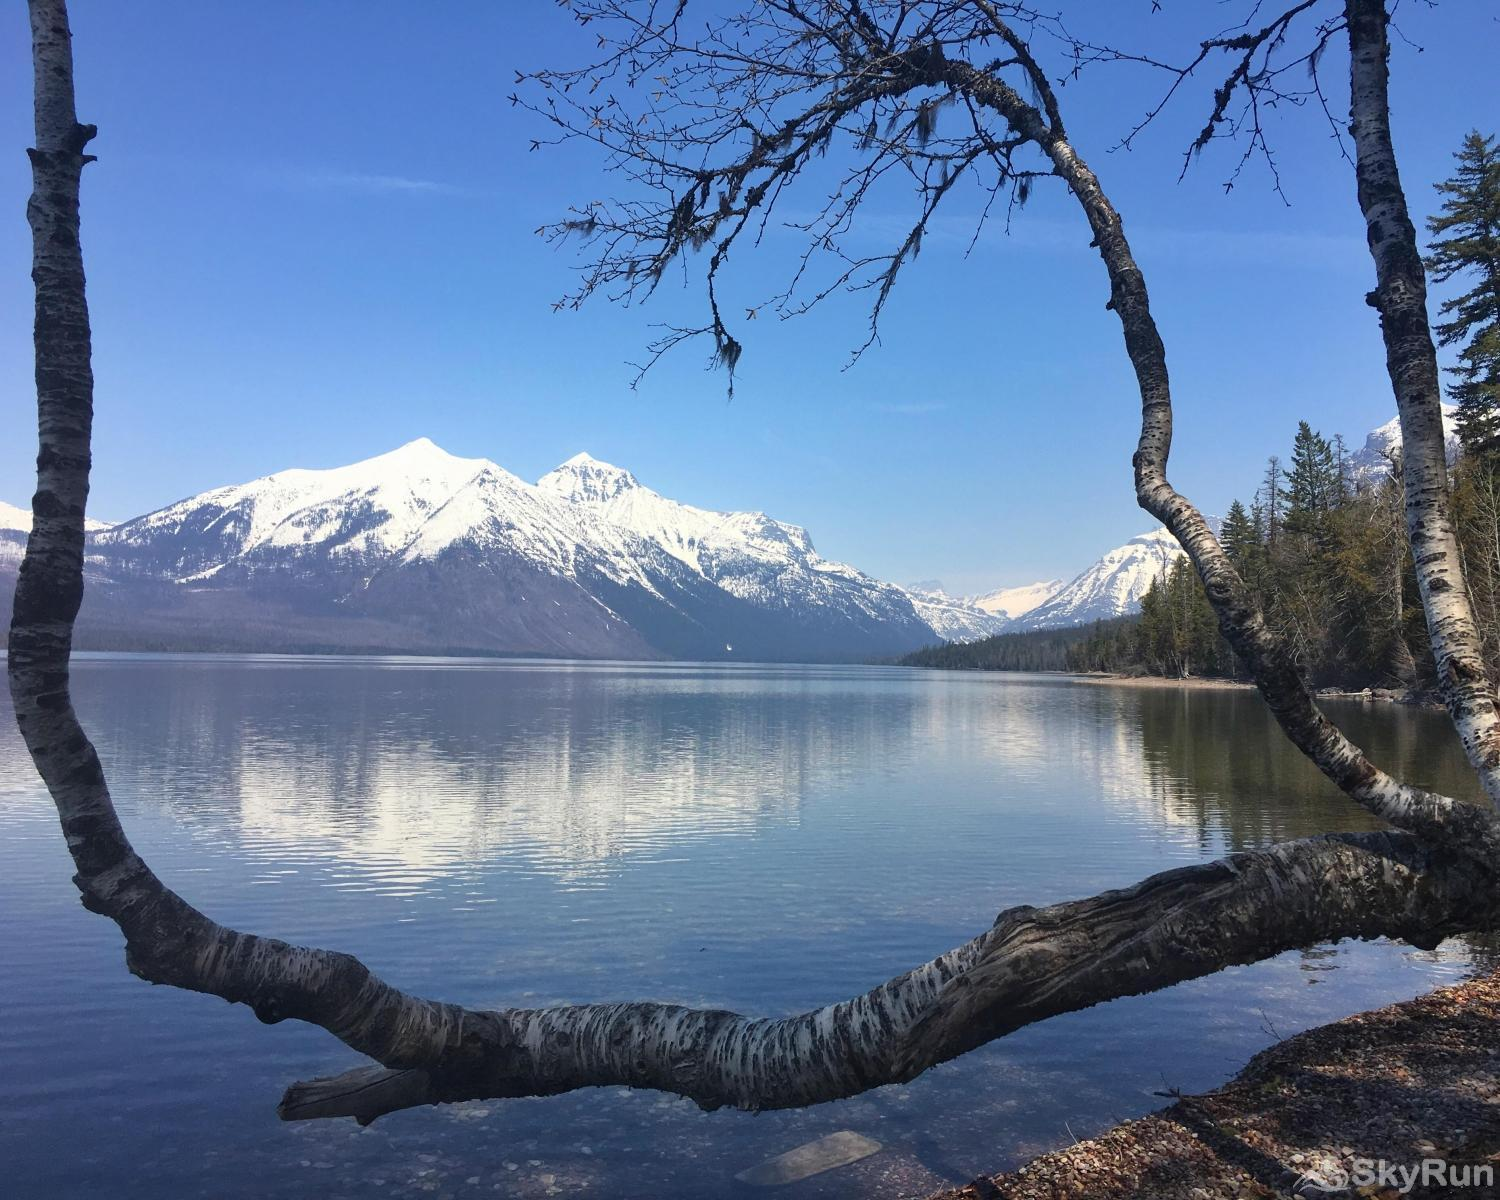 Red Fox Hollow Lake McDonald with some snow capped mountains